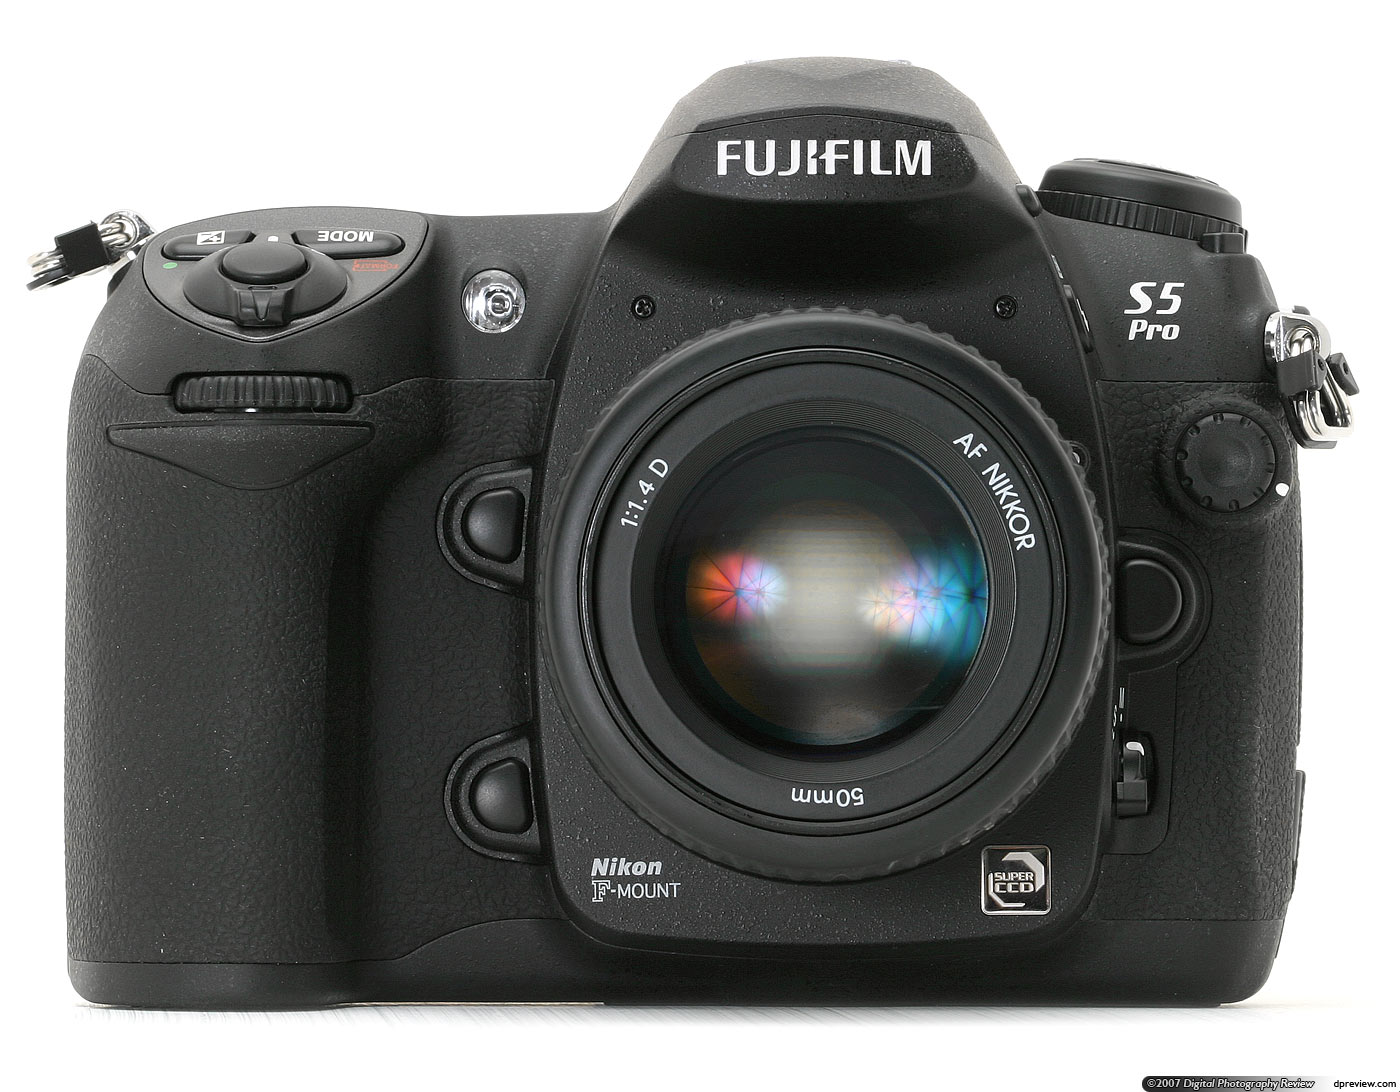 Fujifilm Finepix S5 Pro Review Digital Photography Review